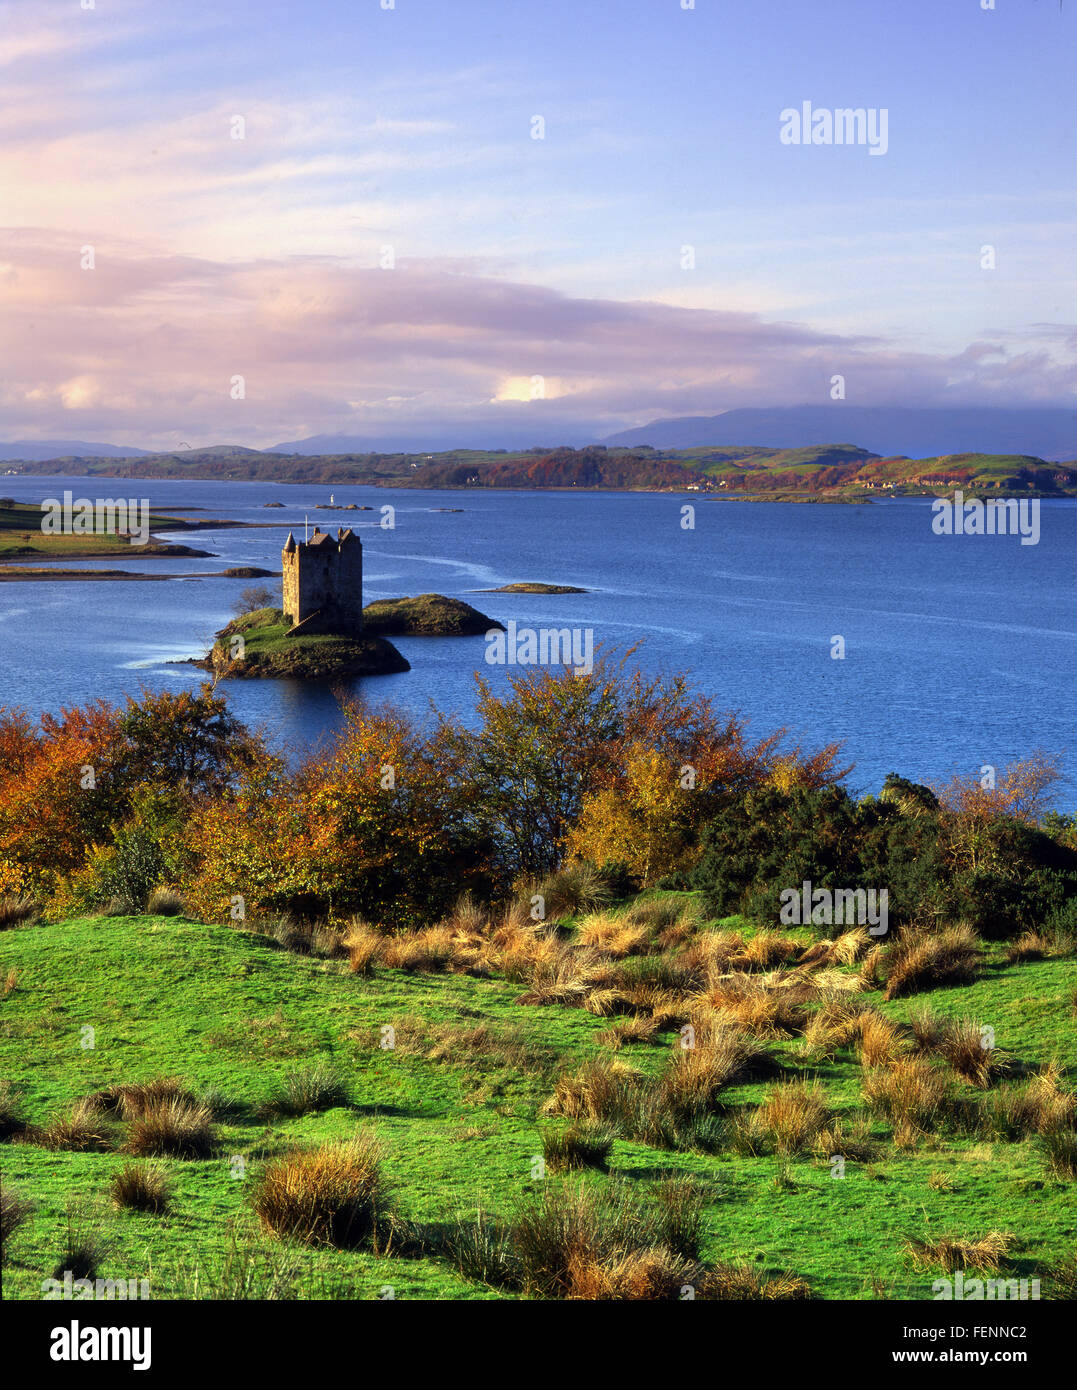 Autumn view of Castle Stalker, Appin, Argyll - Stock Image